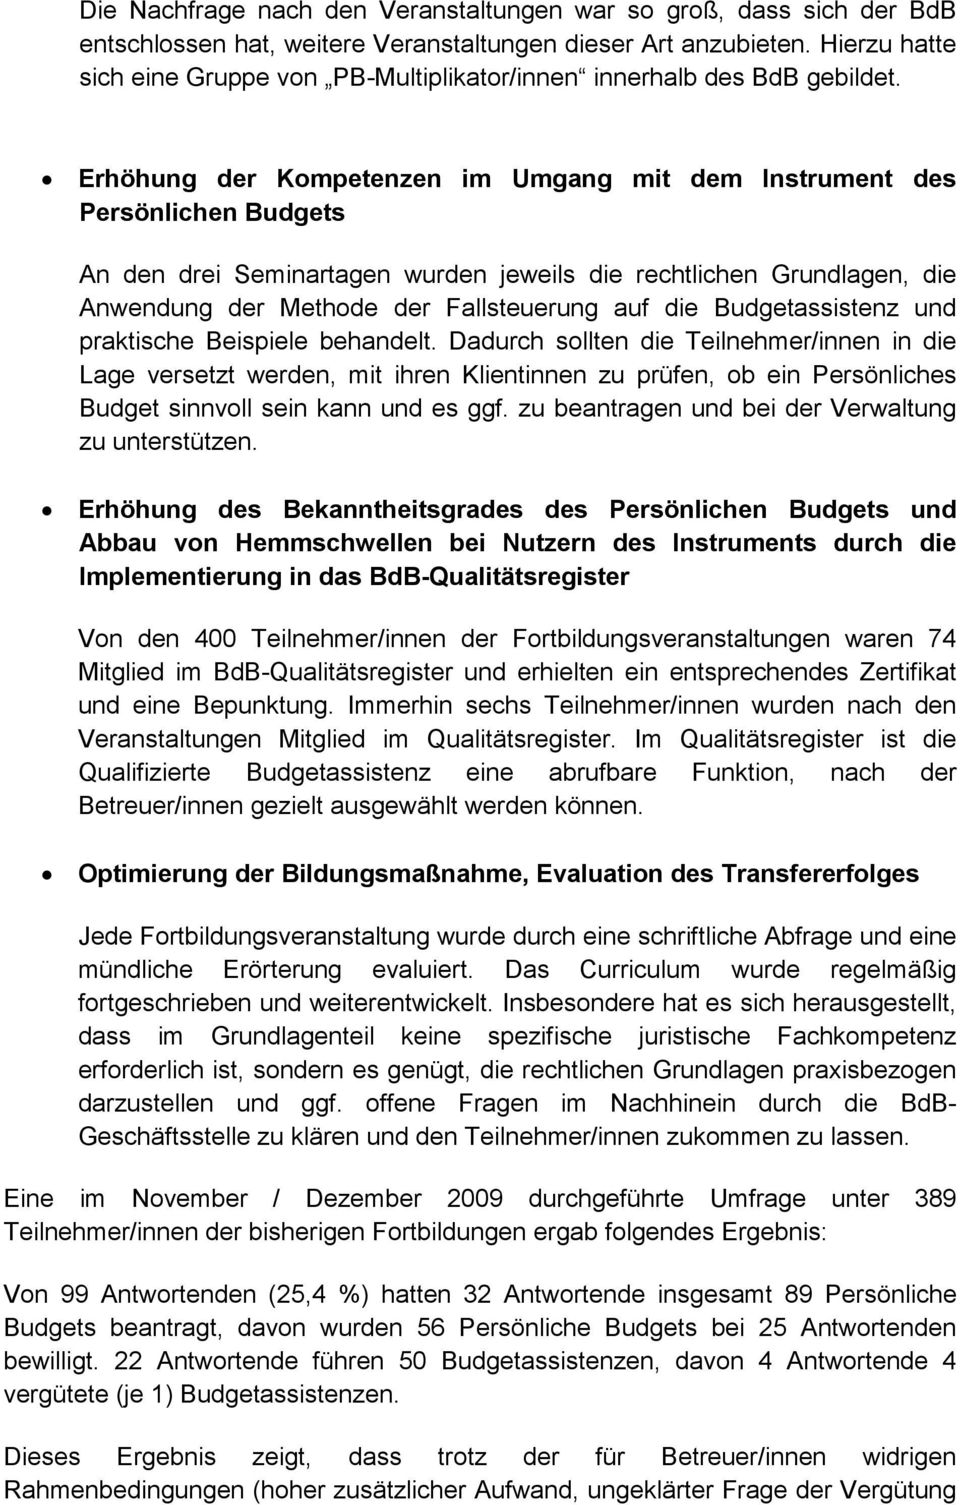 Fein Molekularbiologie Lebenslauf Galerie - Entry Level Resume ...